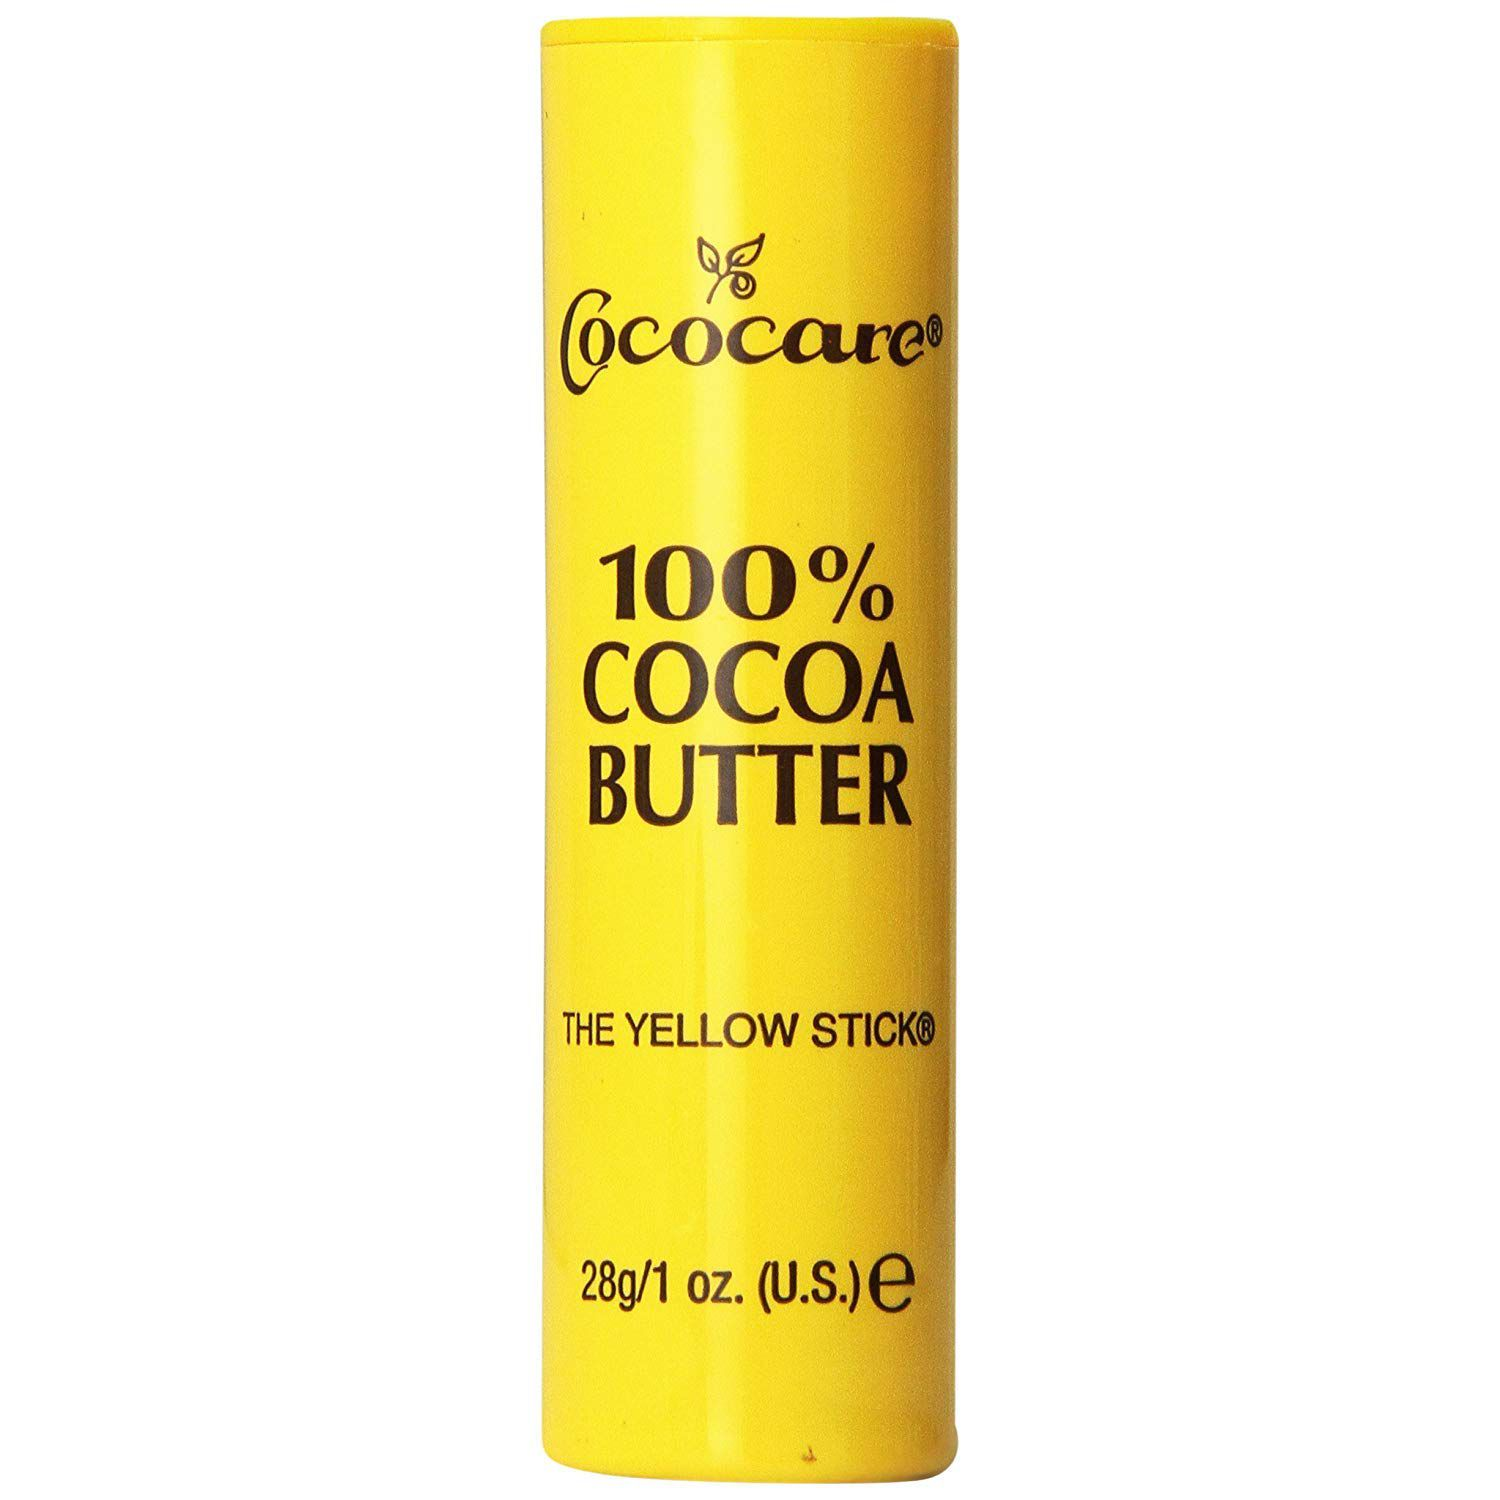 yellow stick of cocoa butter